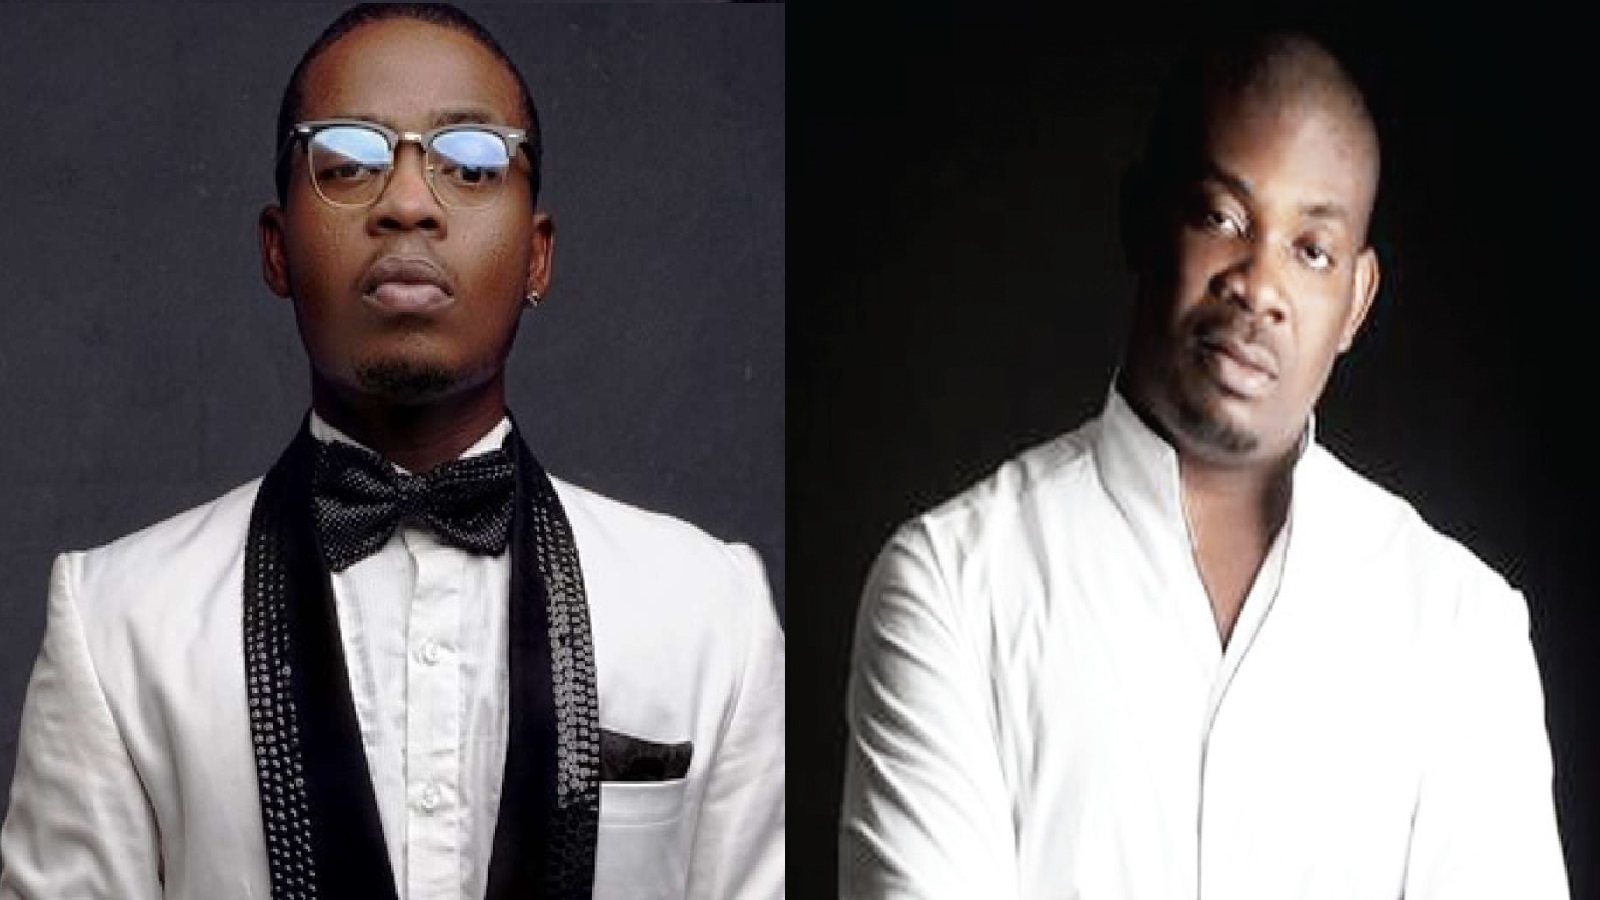 Headies Awards: Olamide, Don Jazzy show bad blood on stage